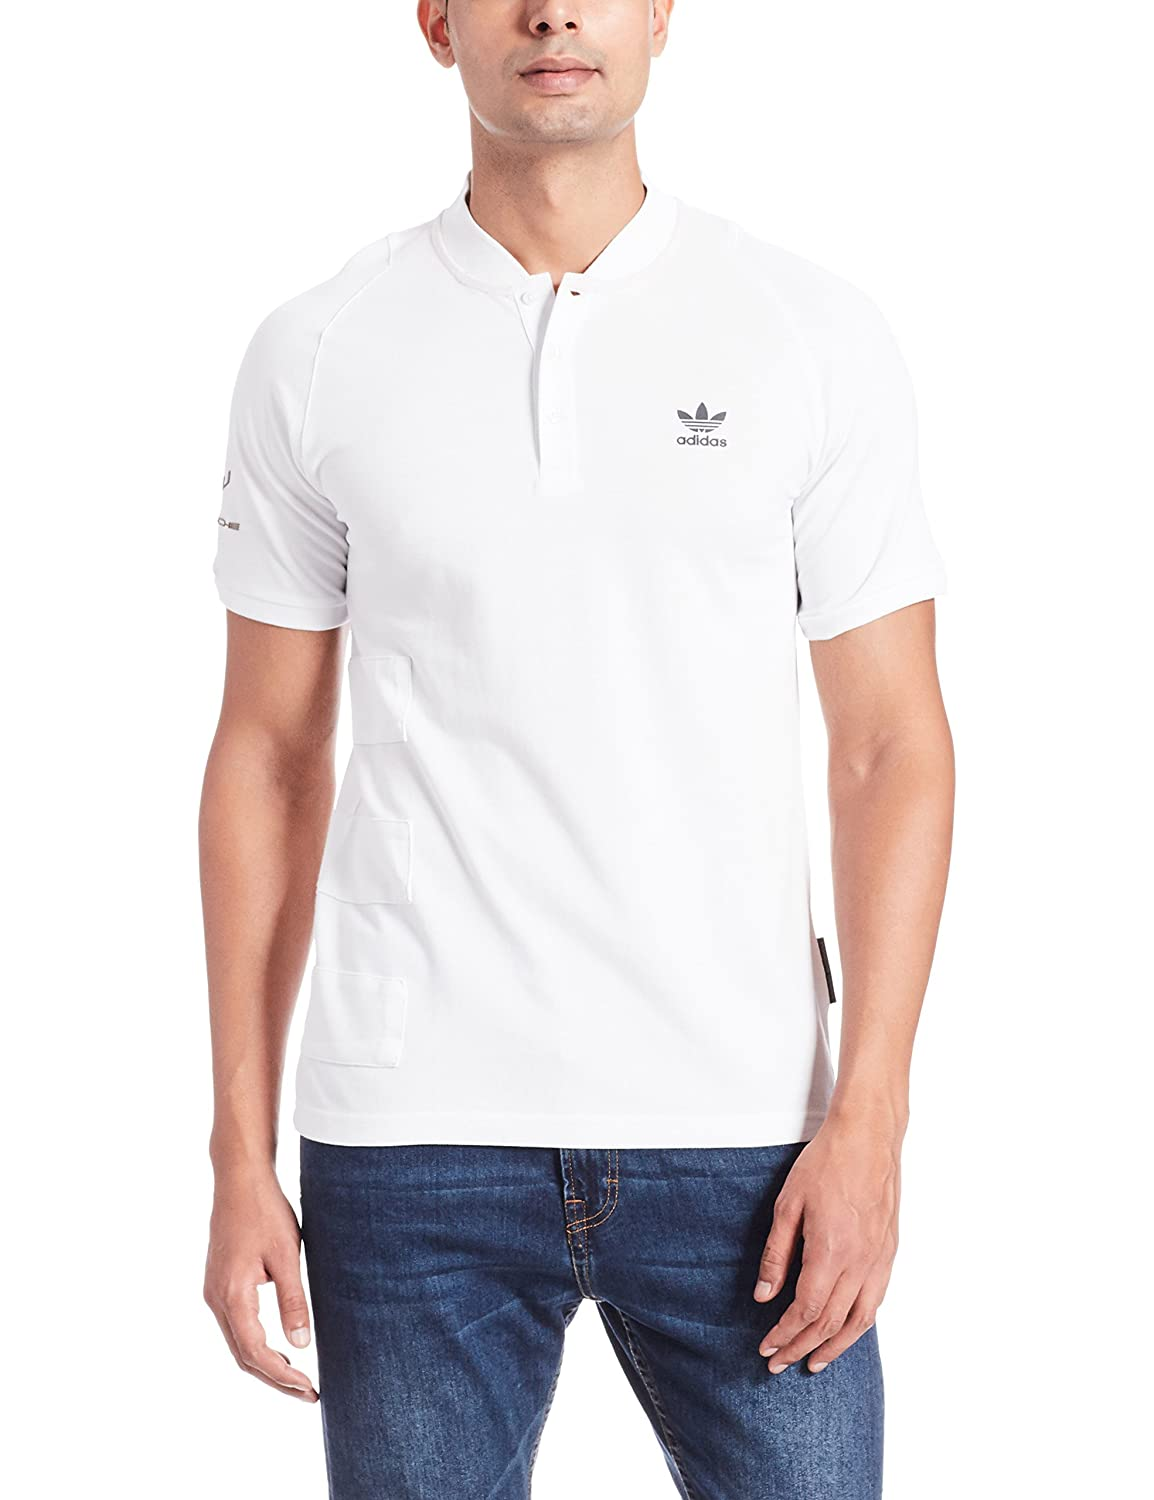 Adidas Porsche 911 Polo Hombres Polo, Blanco, Medium: Amazon.es ...